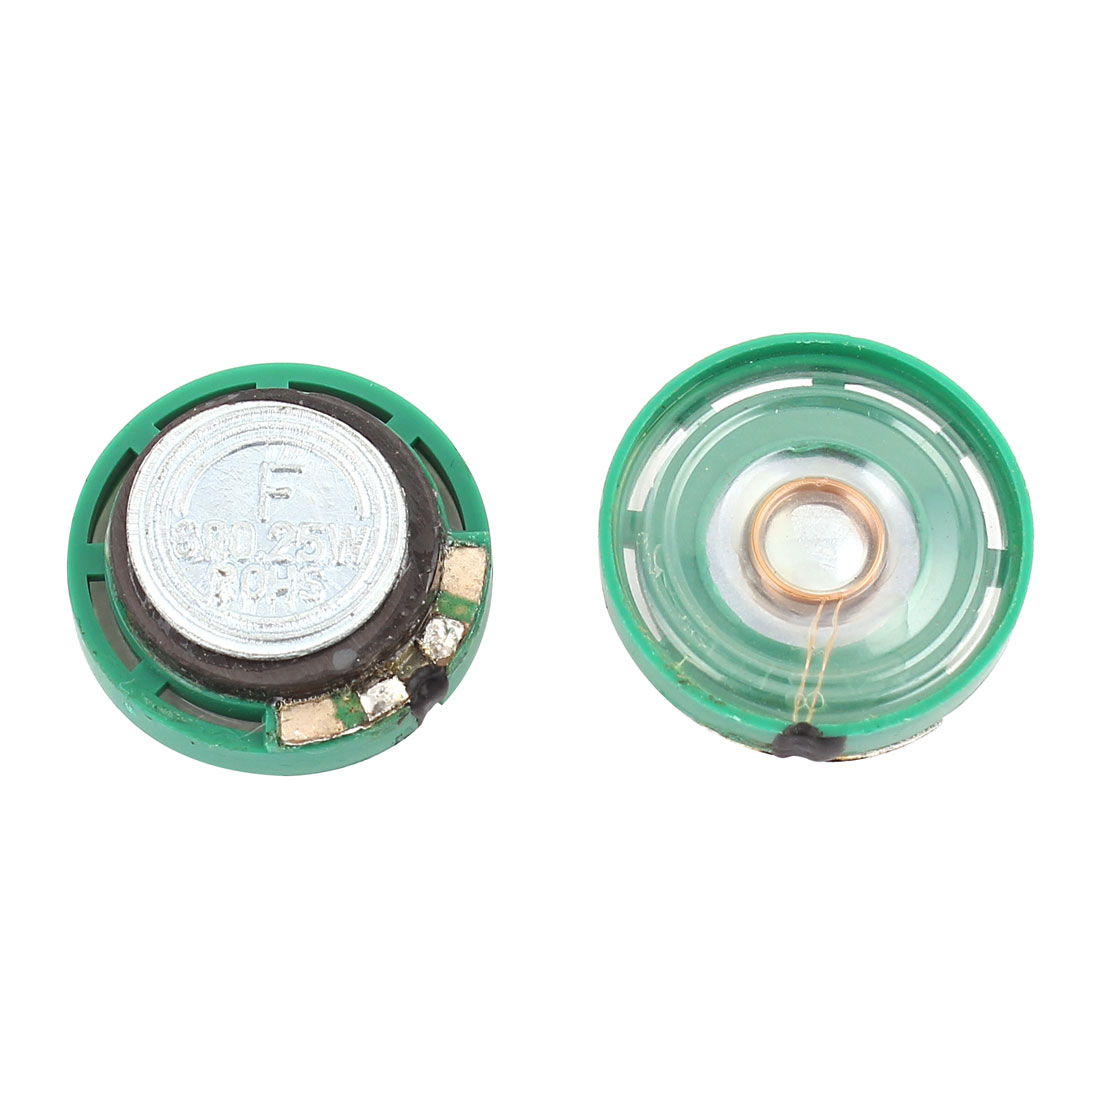 2Pcs 0.25W 8 Ohm 21mm Dia Green Plastic Shell External Magnetic Magnet Electronic Speaker Loudspeaker